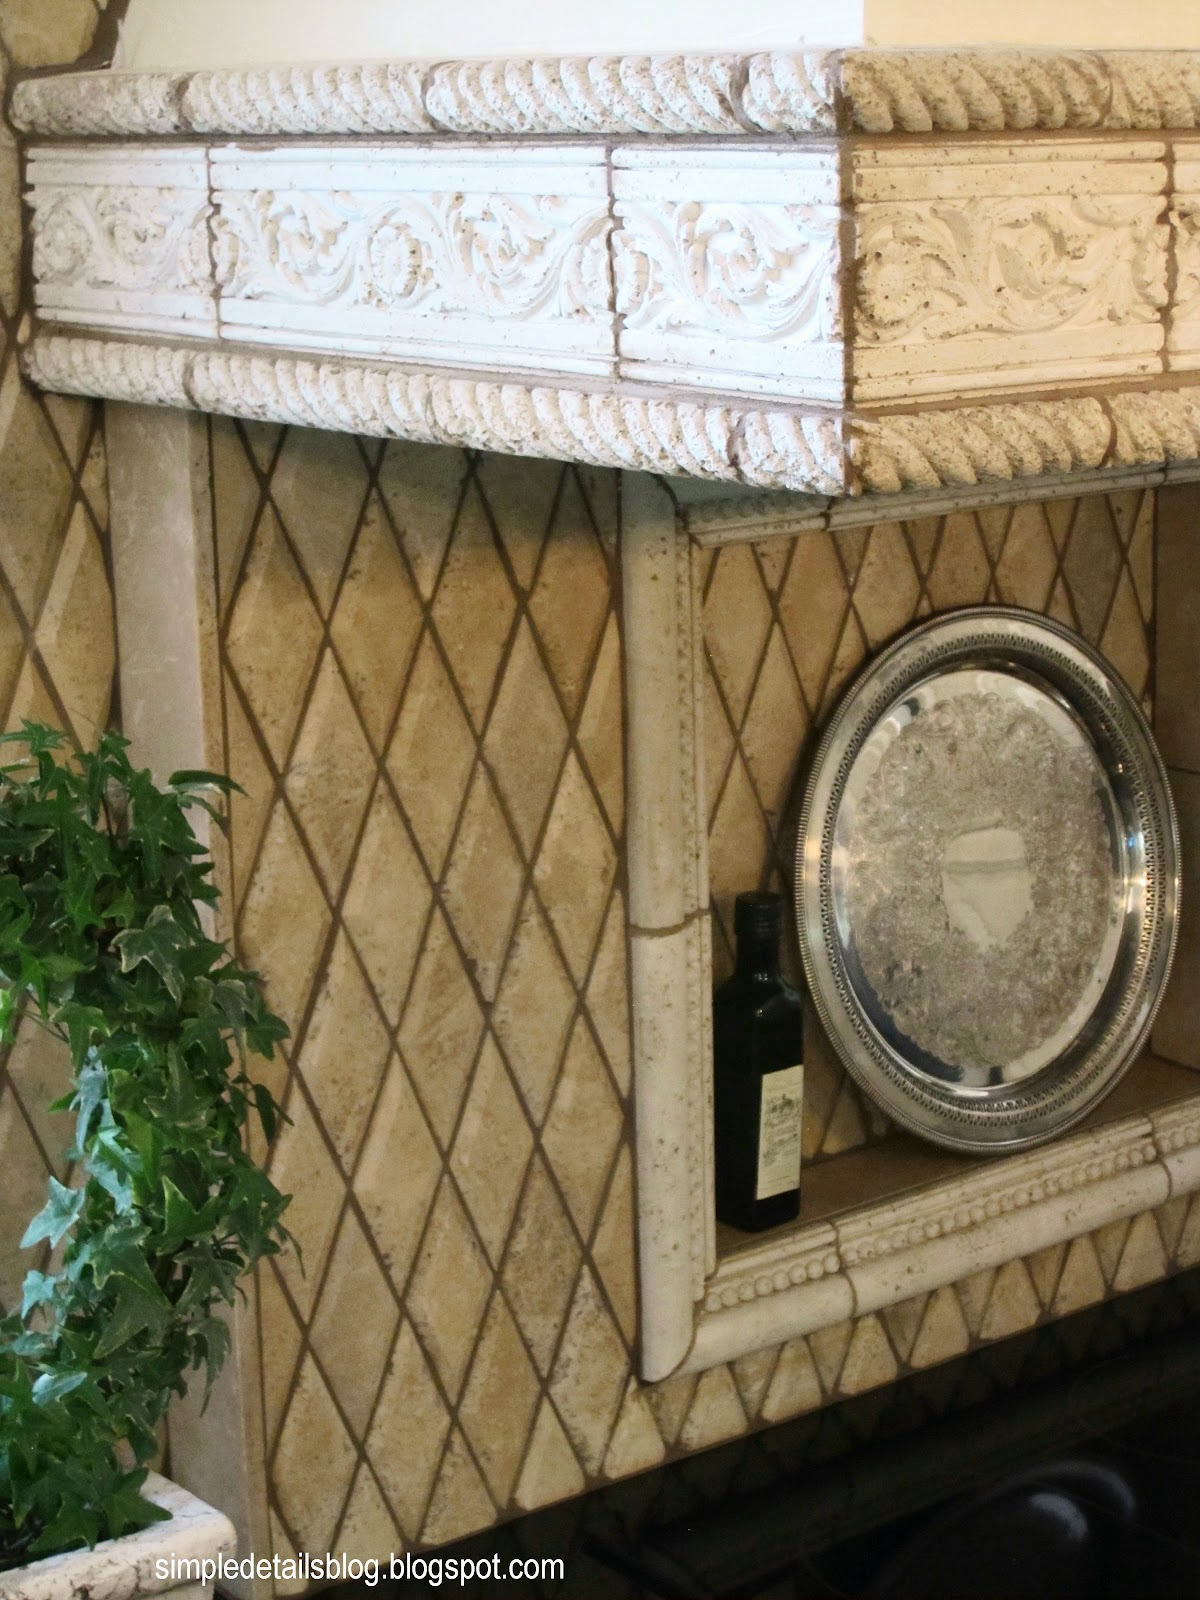 Beveled harlequin tiles lend a rustic texture, I took them to ceiling